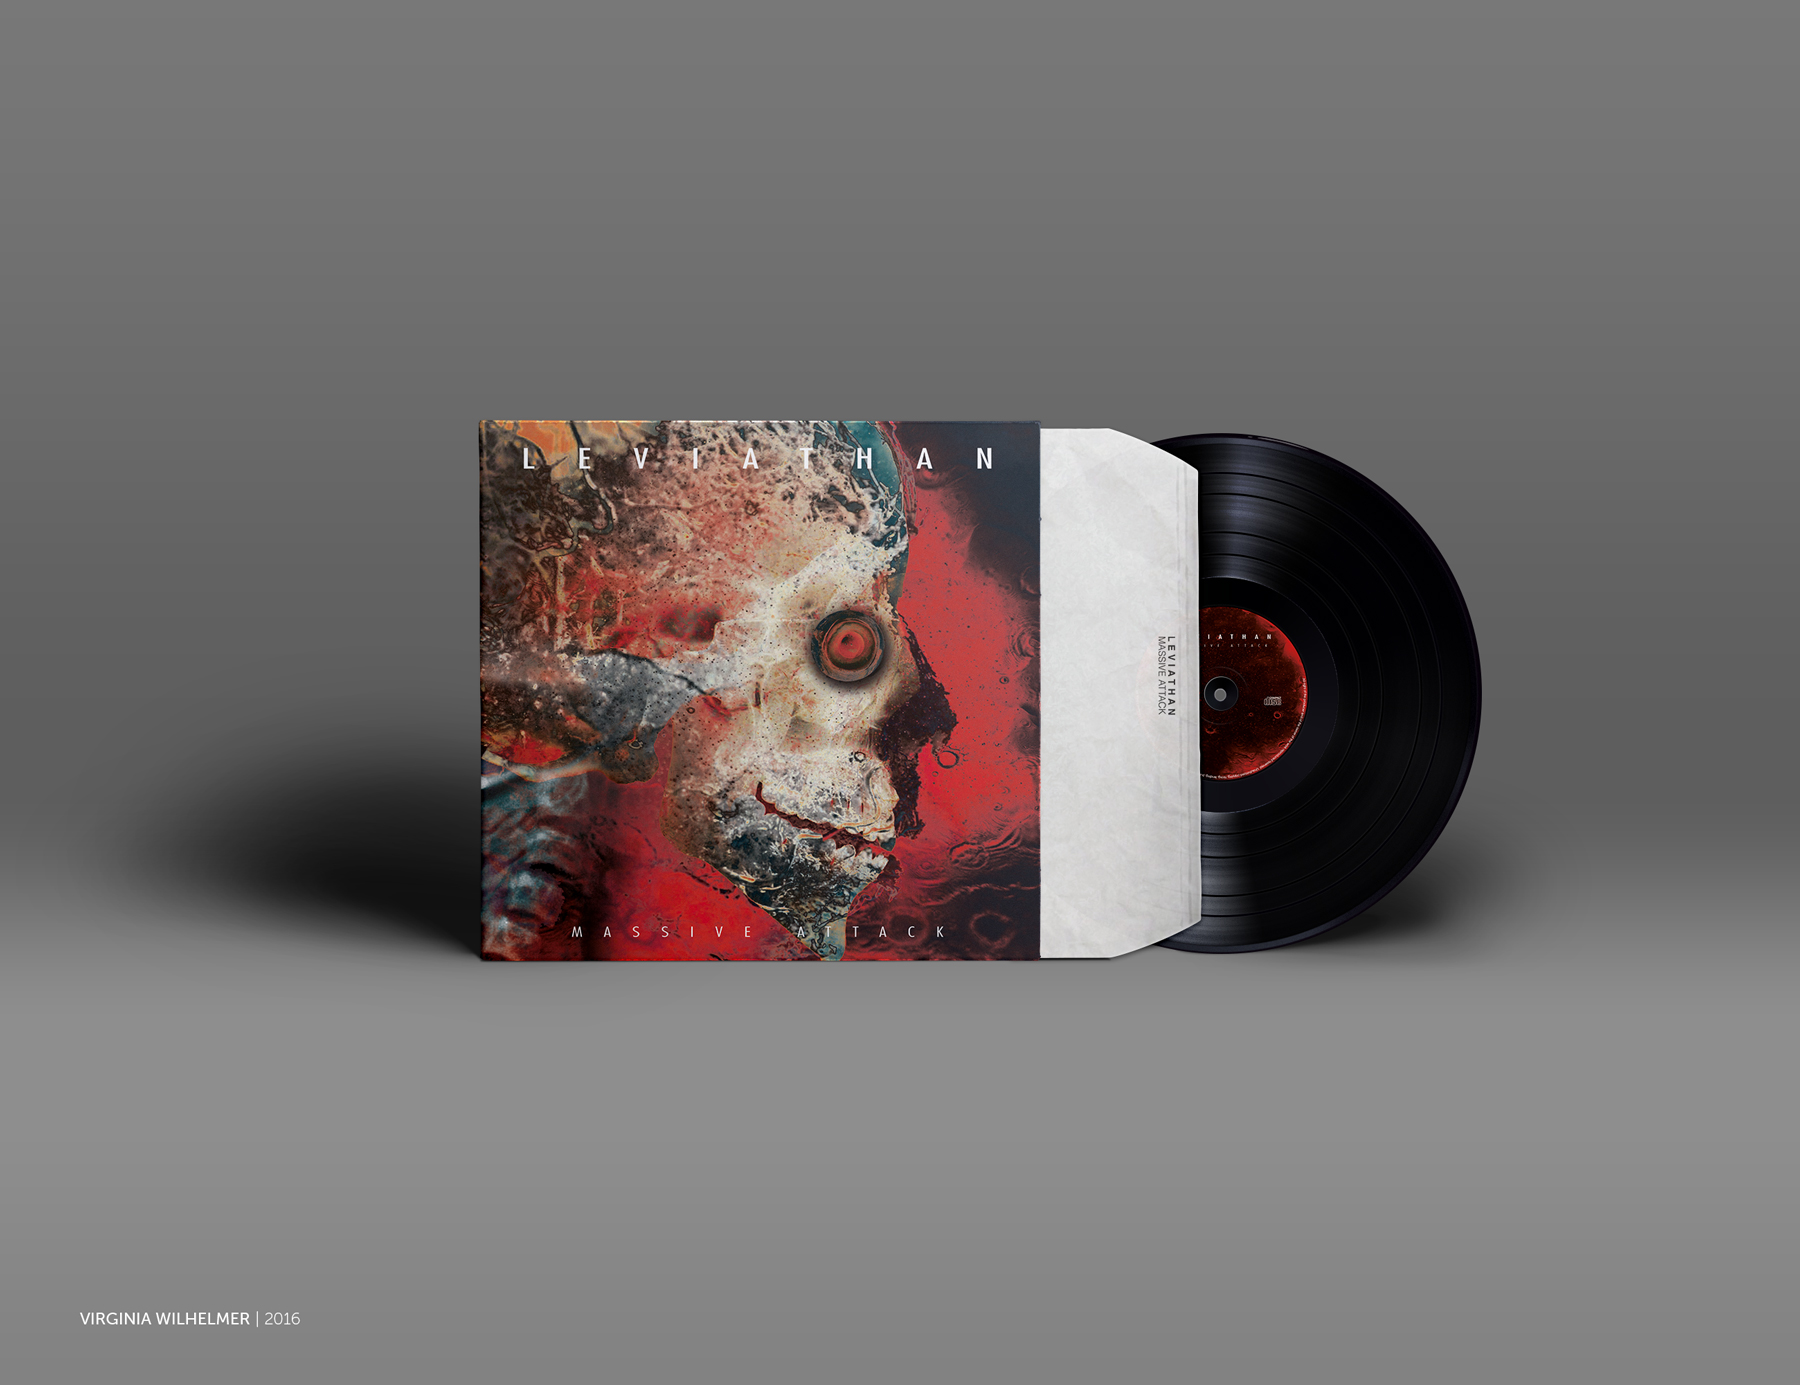 massive_attack_vinyl_mock